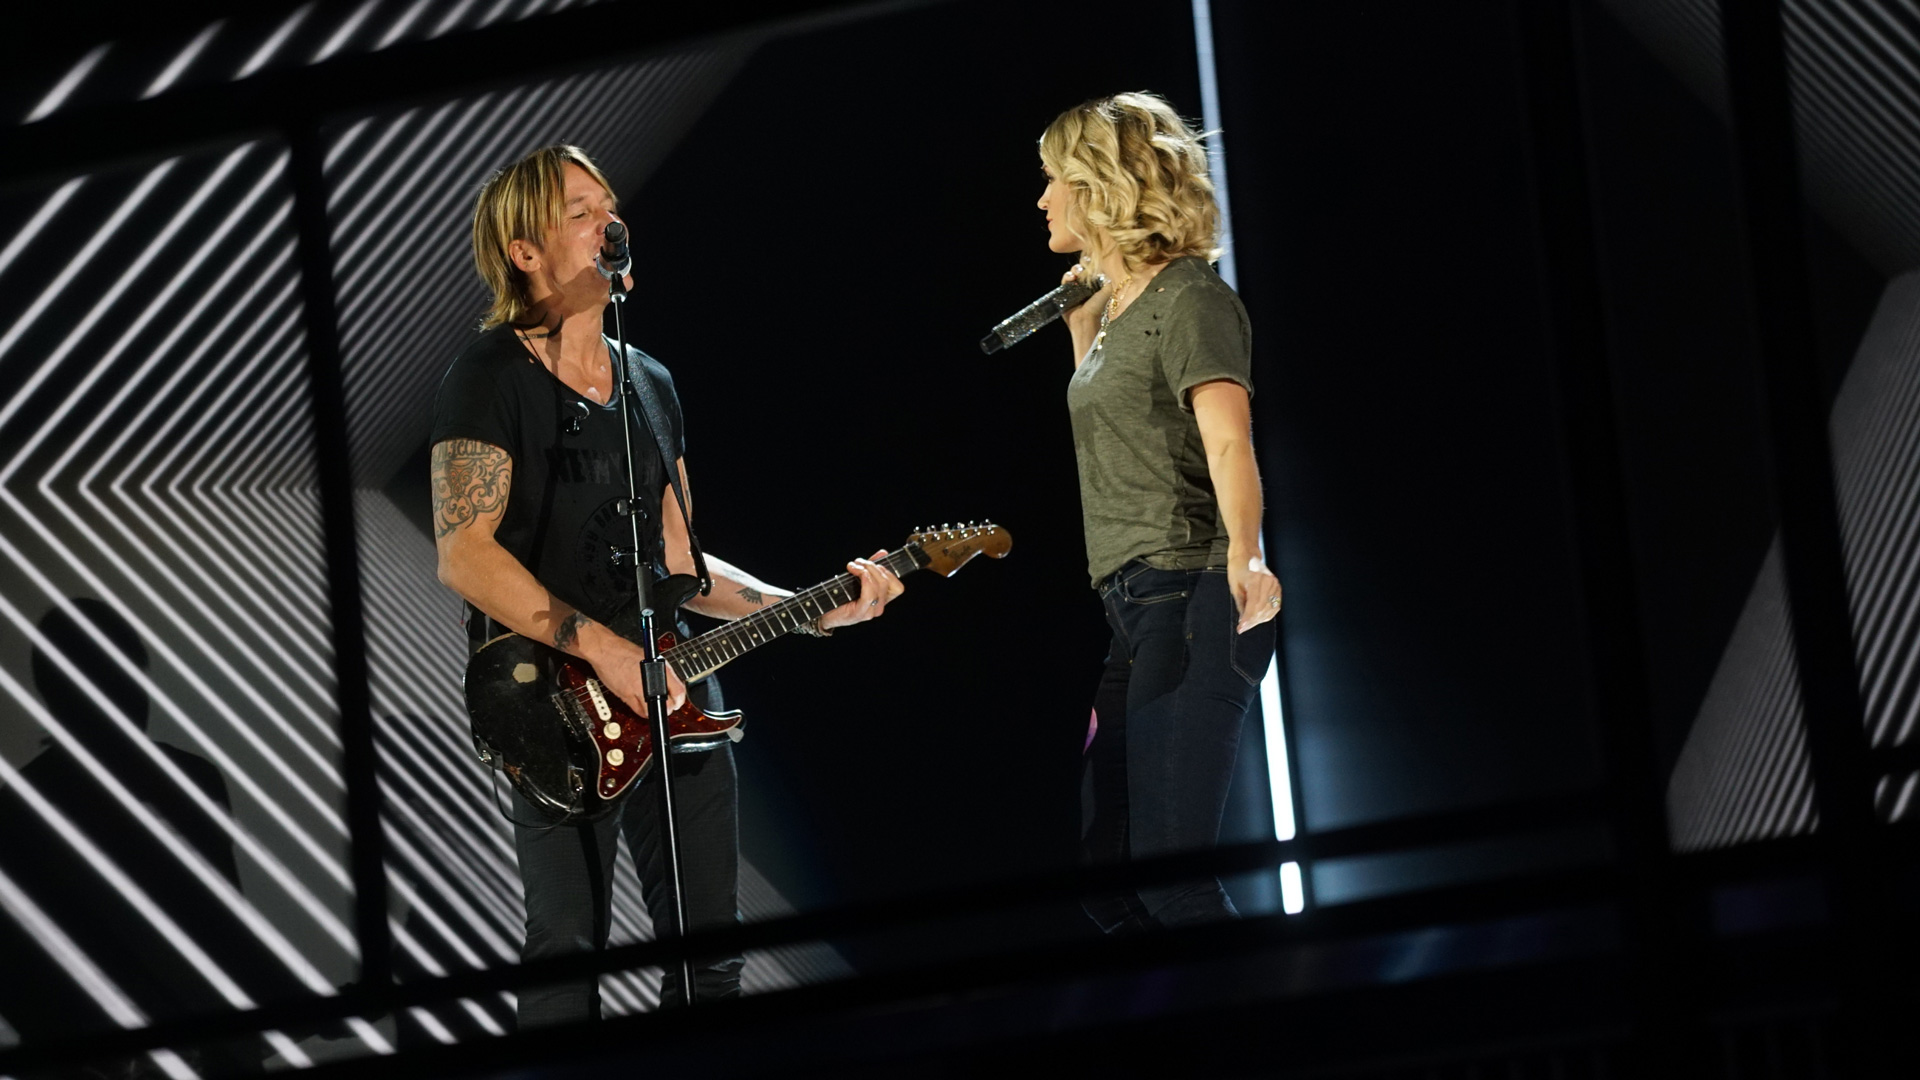 Keith Urban and Carrie Underwood sport a relaxed look while rehearsing at Staples Center.